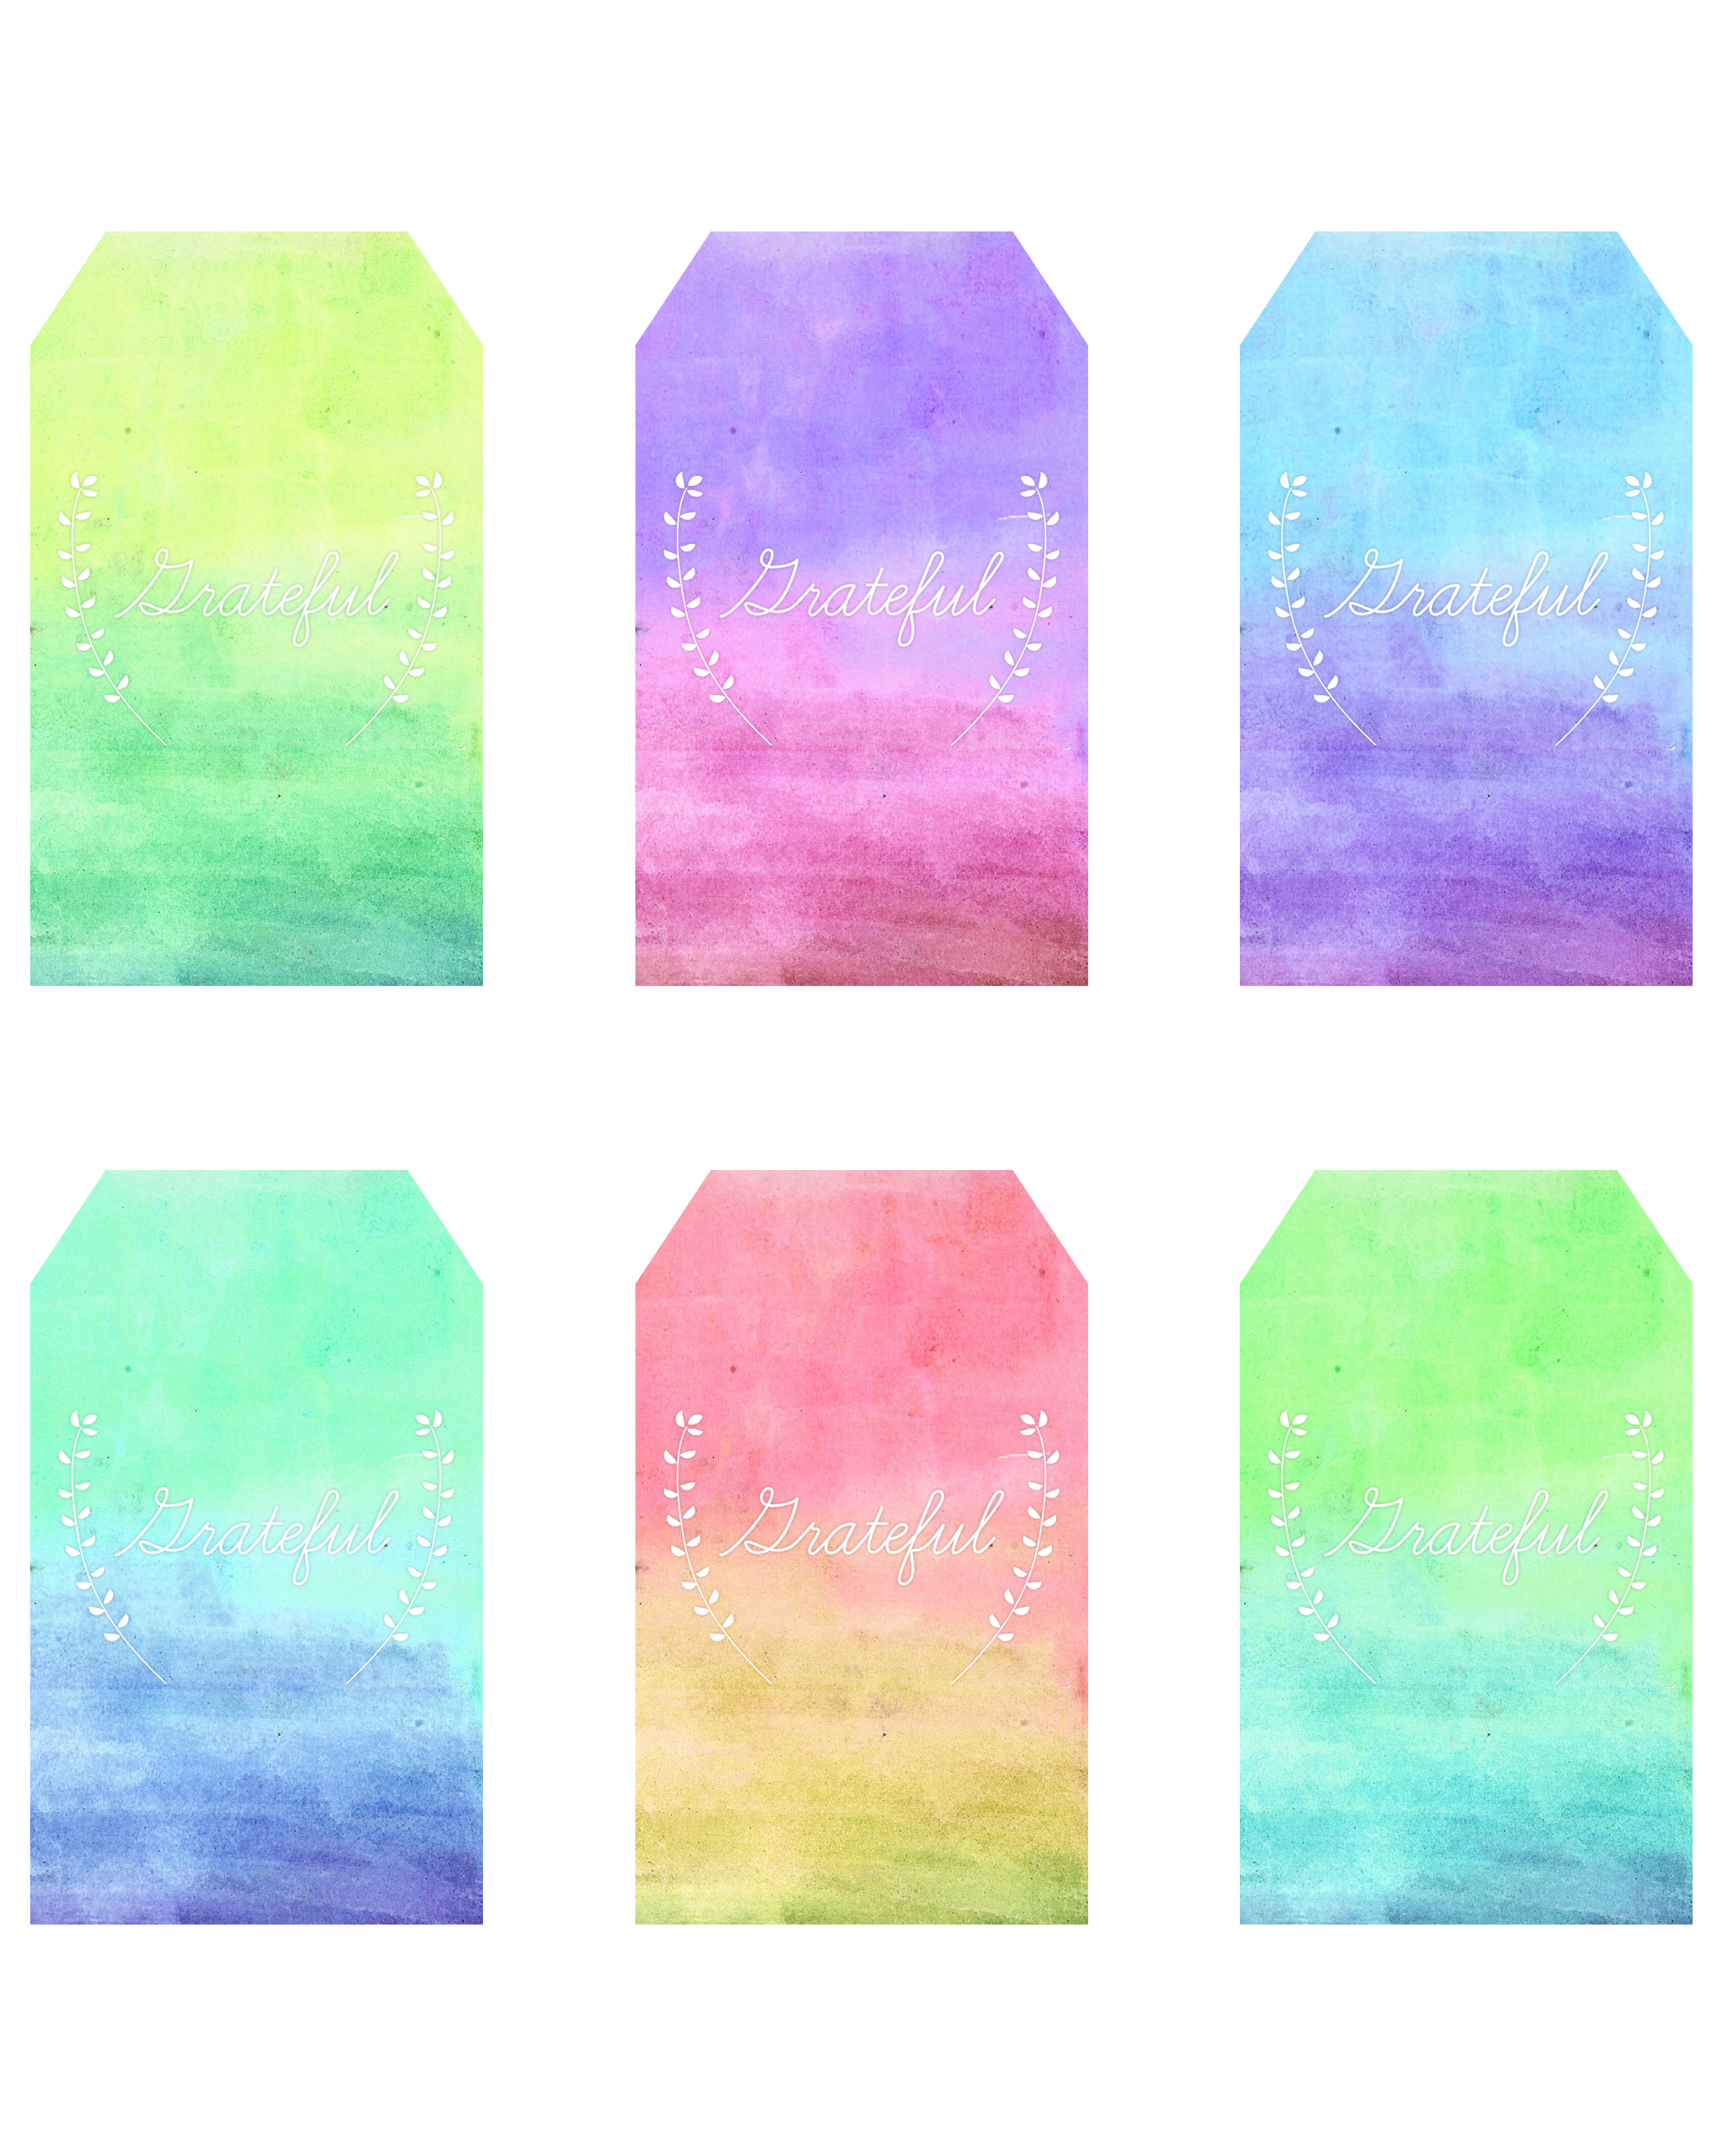 Watercolor labels png. Index of freebies